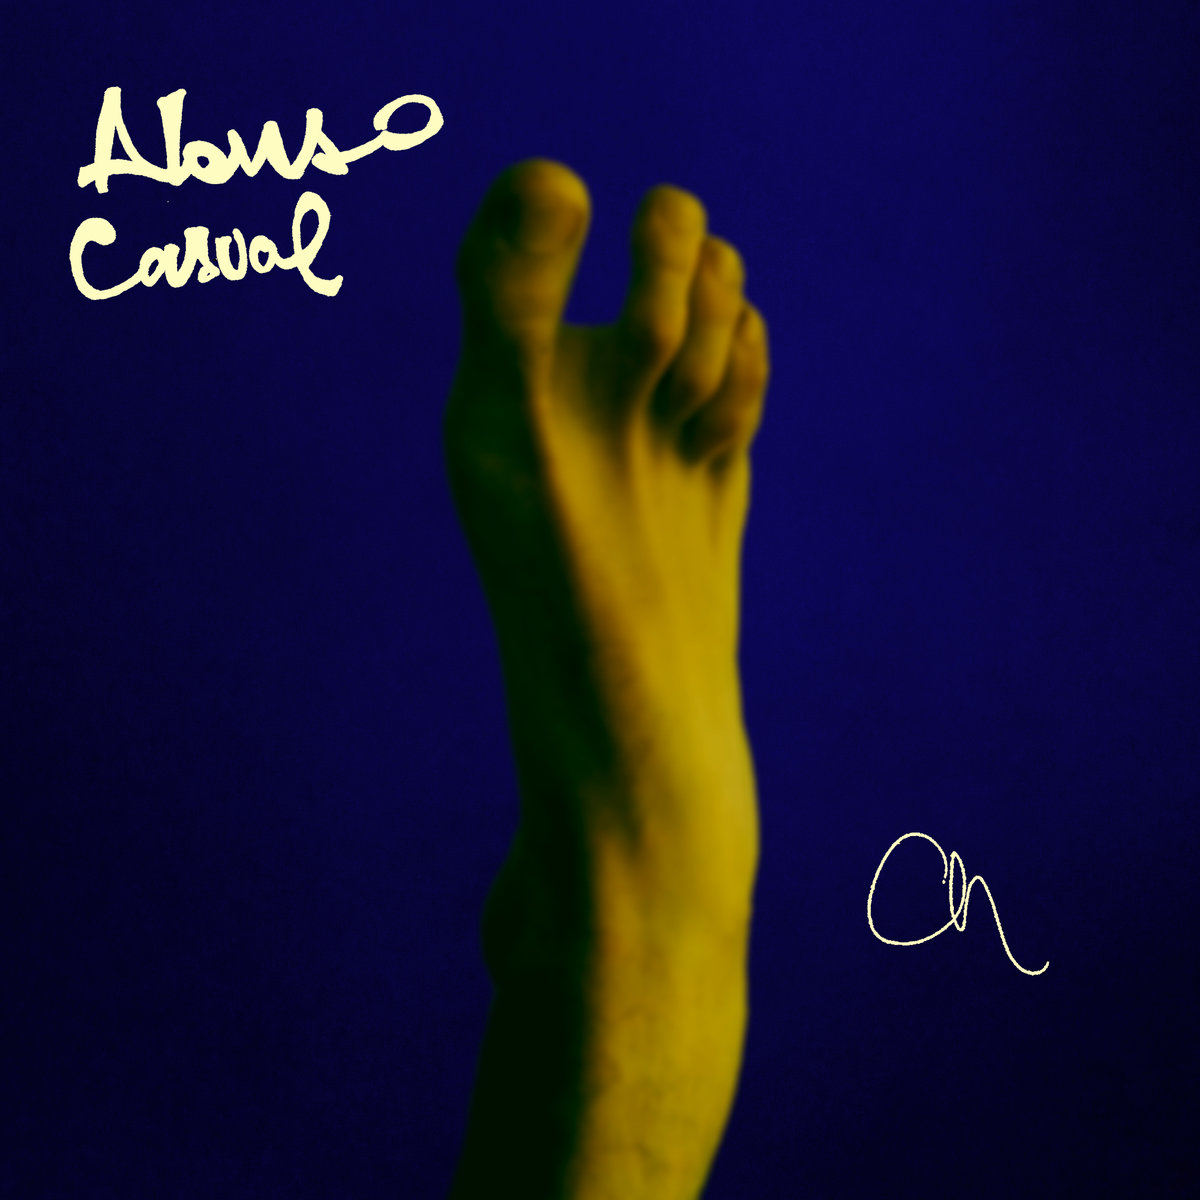 Alonso Casual – CH (2018)